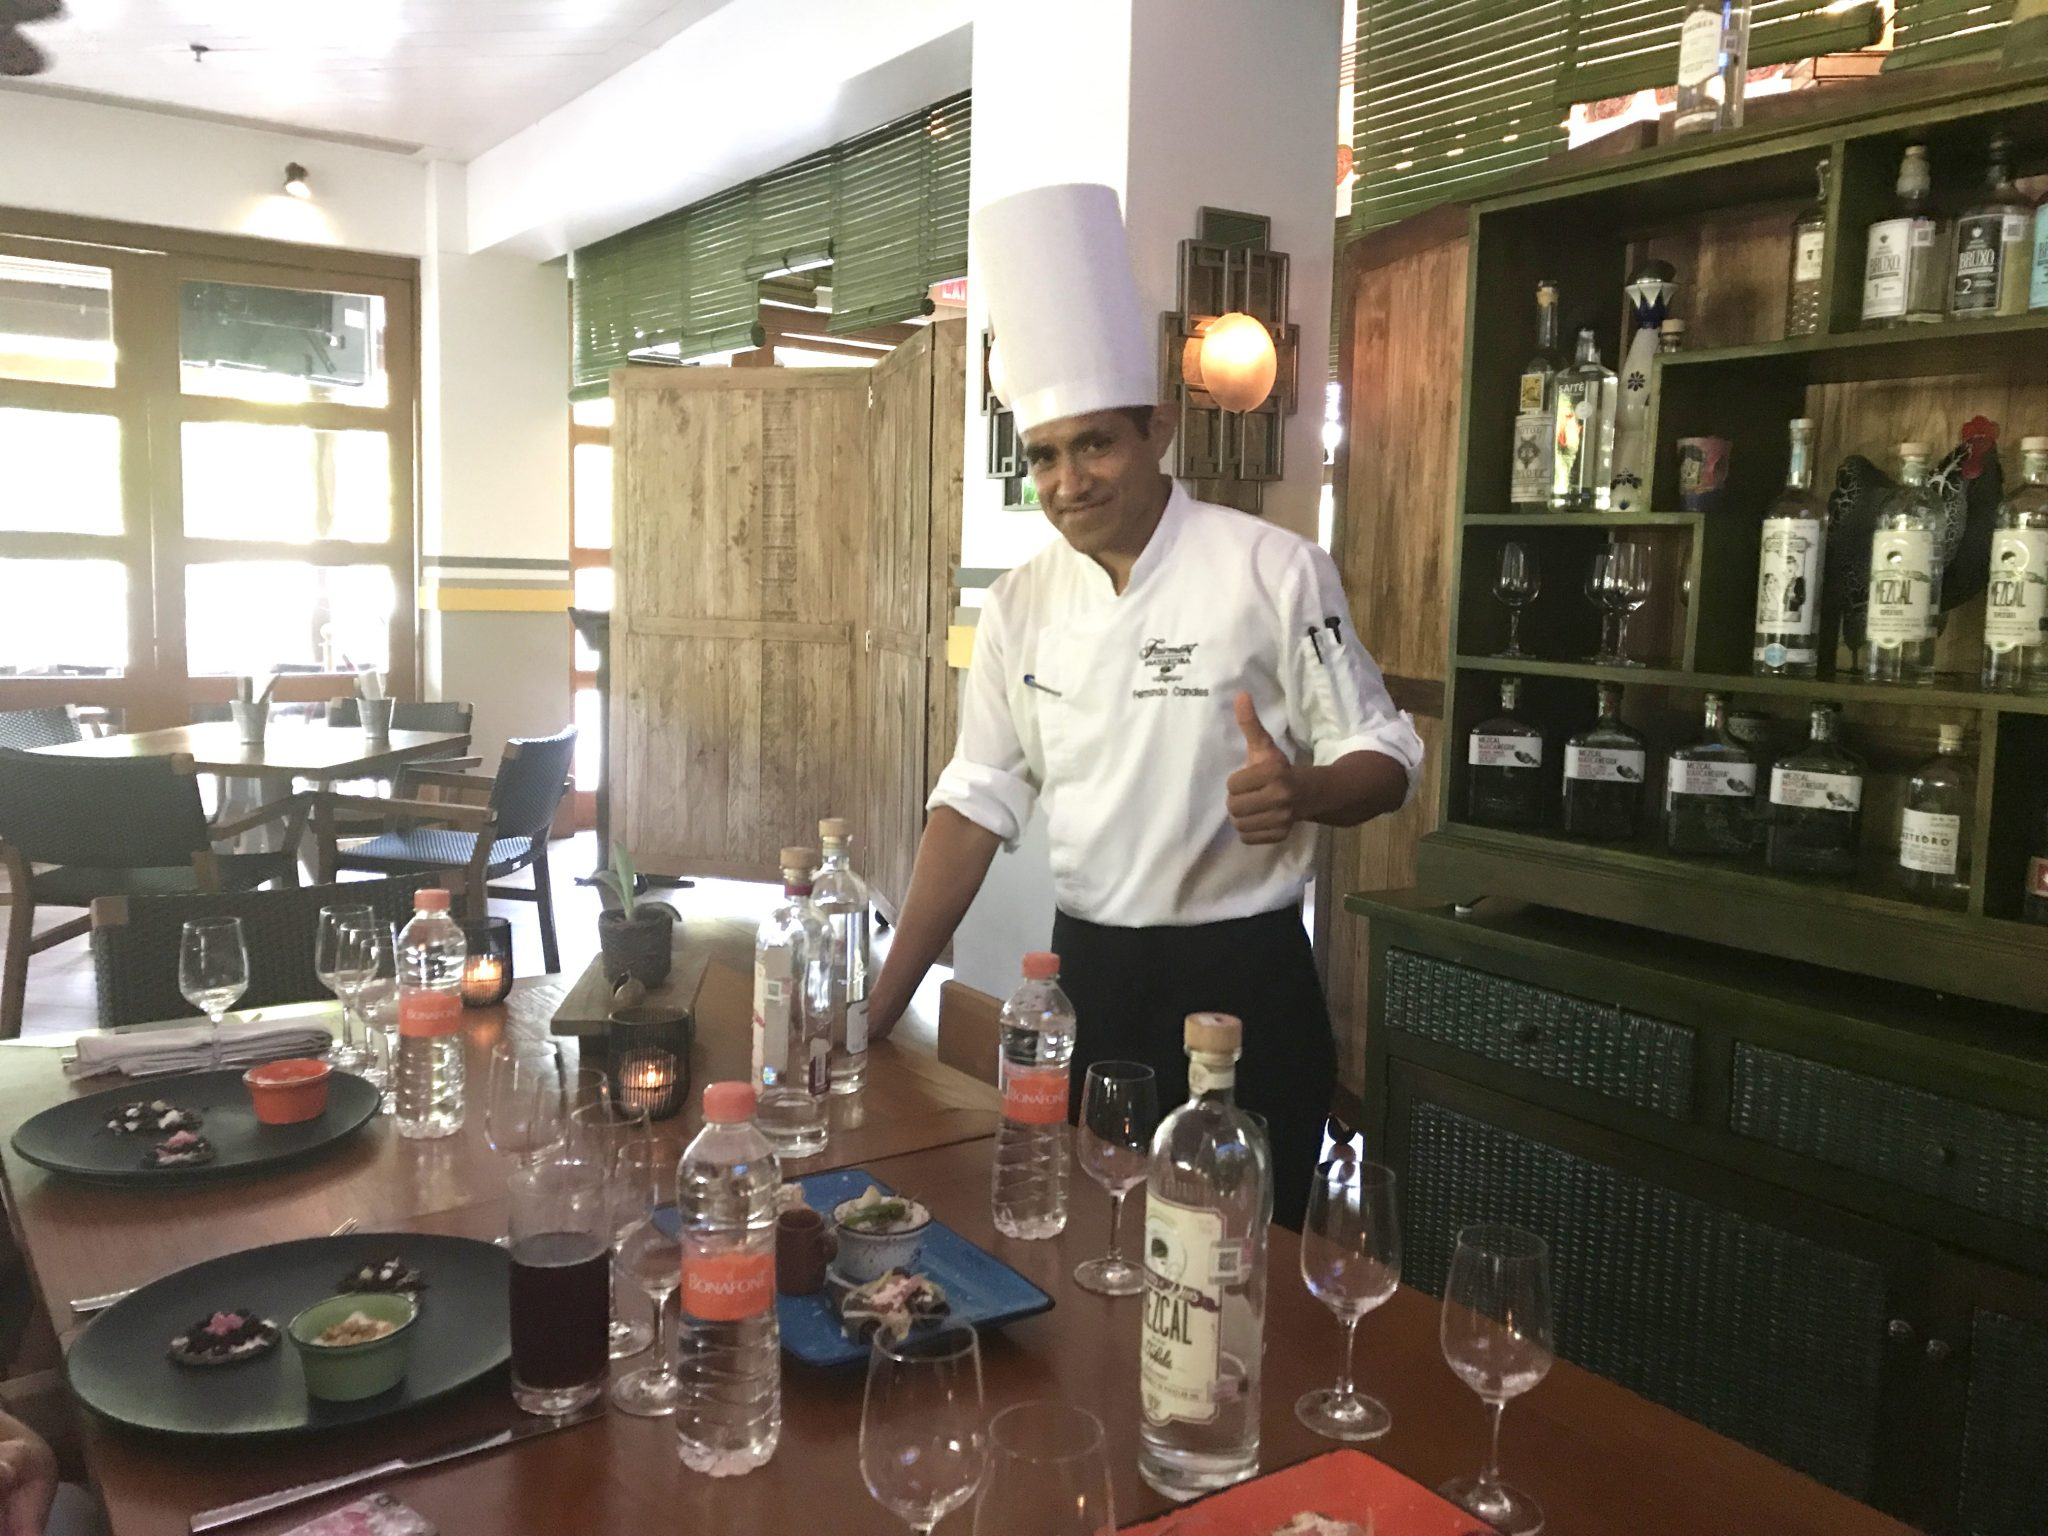 Fairmont Mayakoba Chef serving insects